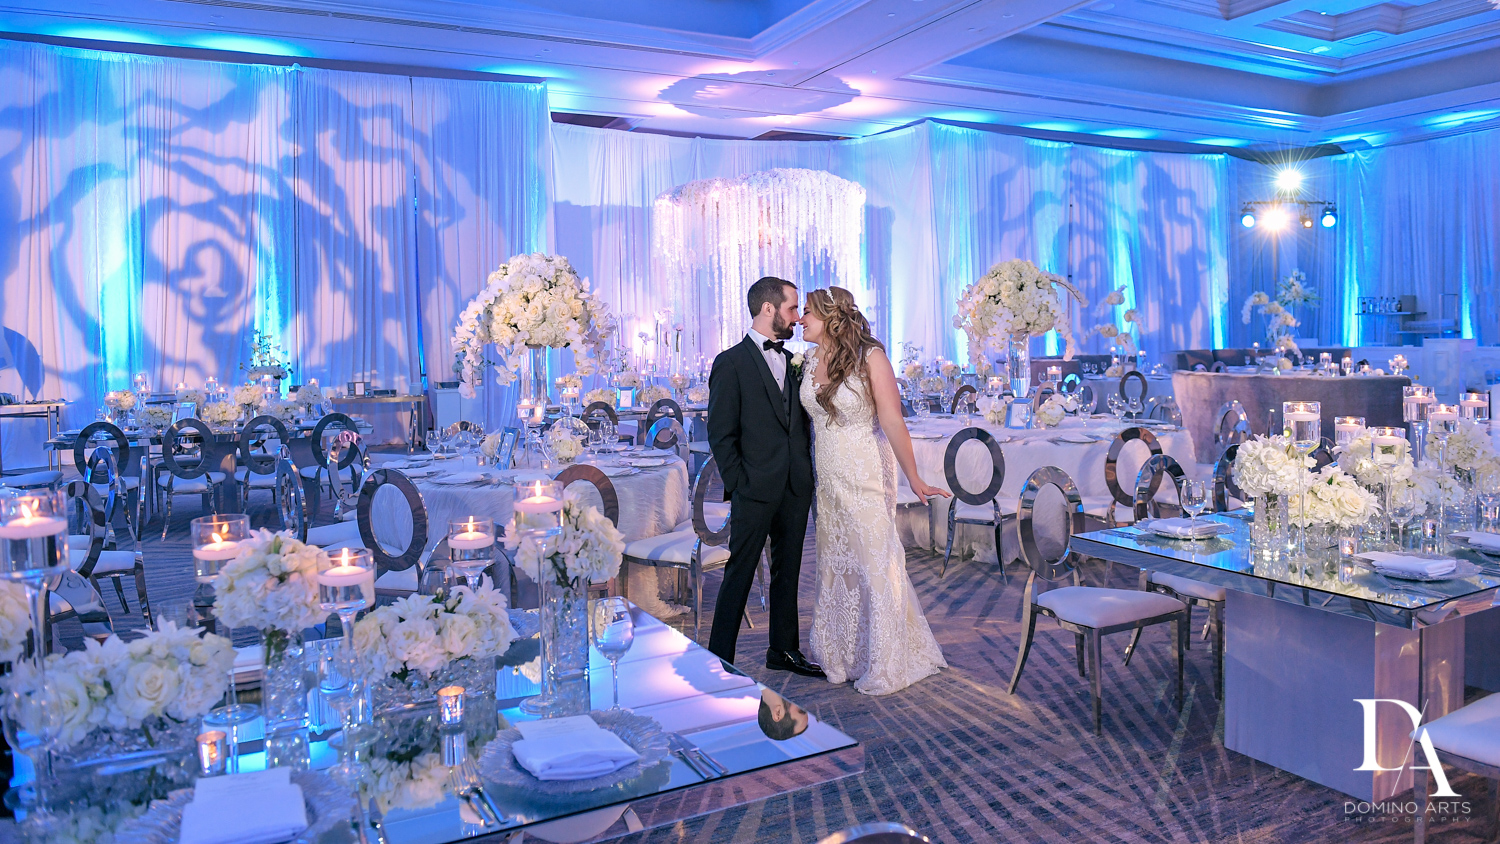 Ultimate Events Wedding at Turnberry Isle Resort Miami by Domino Arts Photography